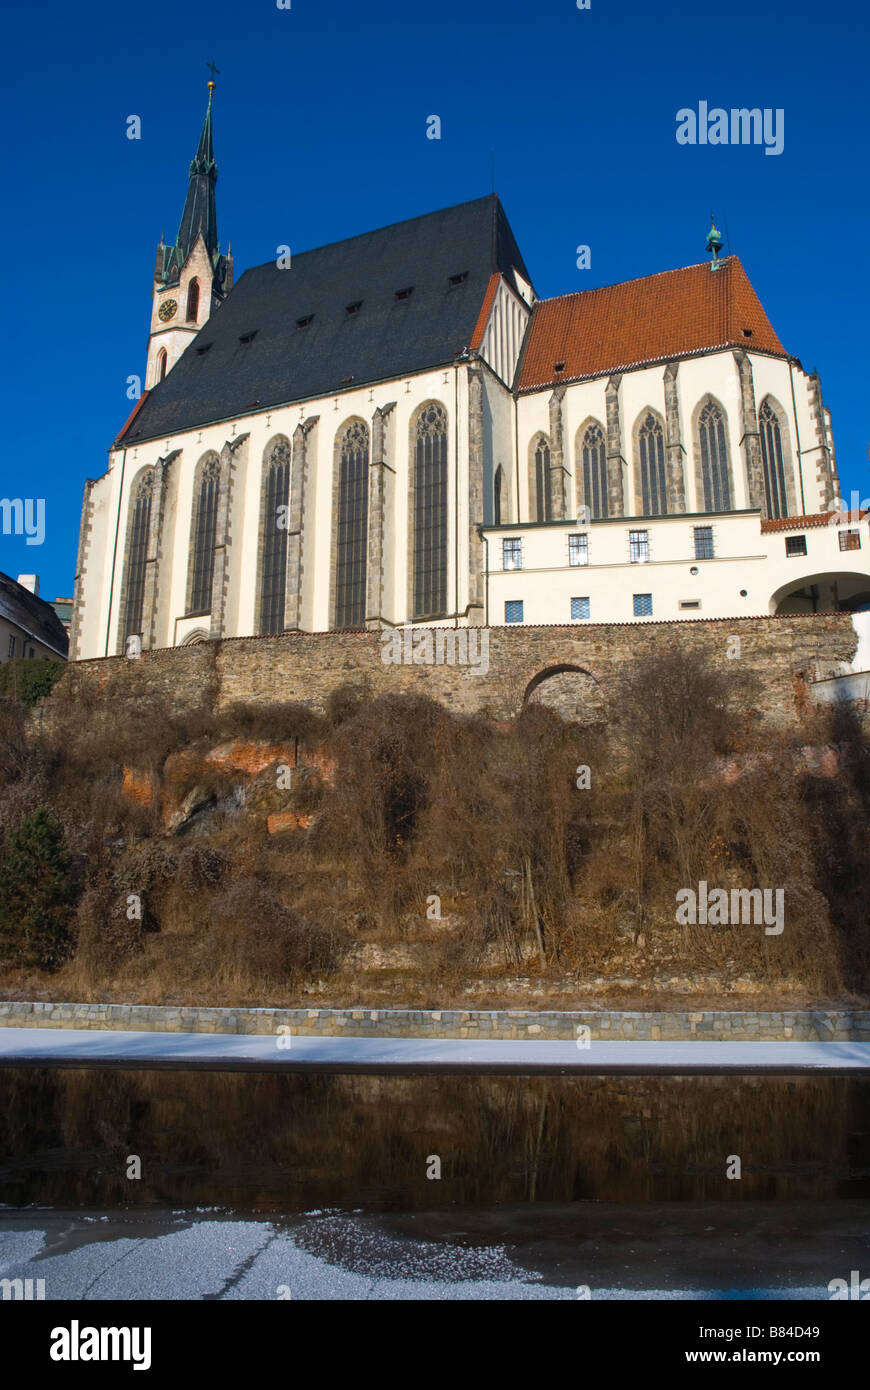 St Vitus cathedral by River Vltava in Cesky Krumlov Czech Republic Europe - Stock Image